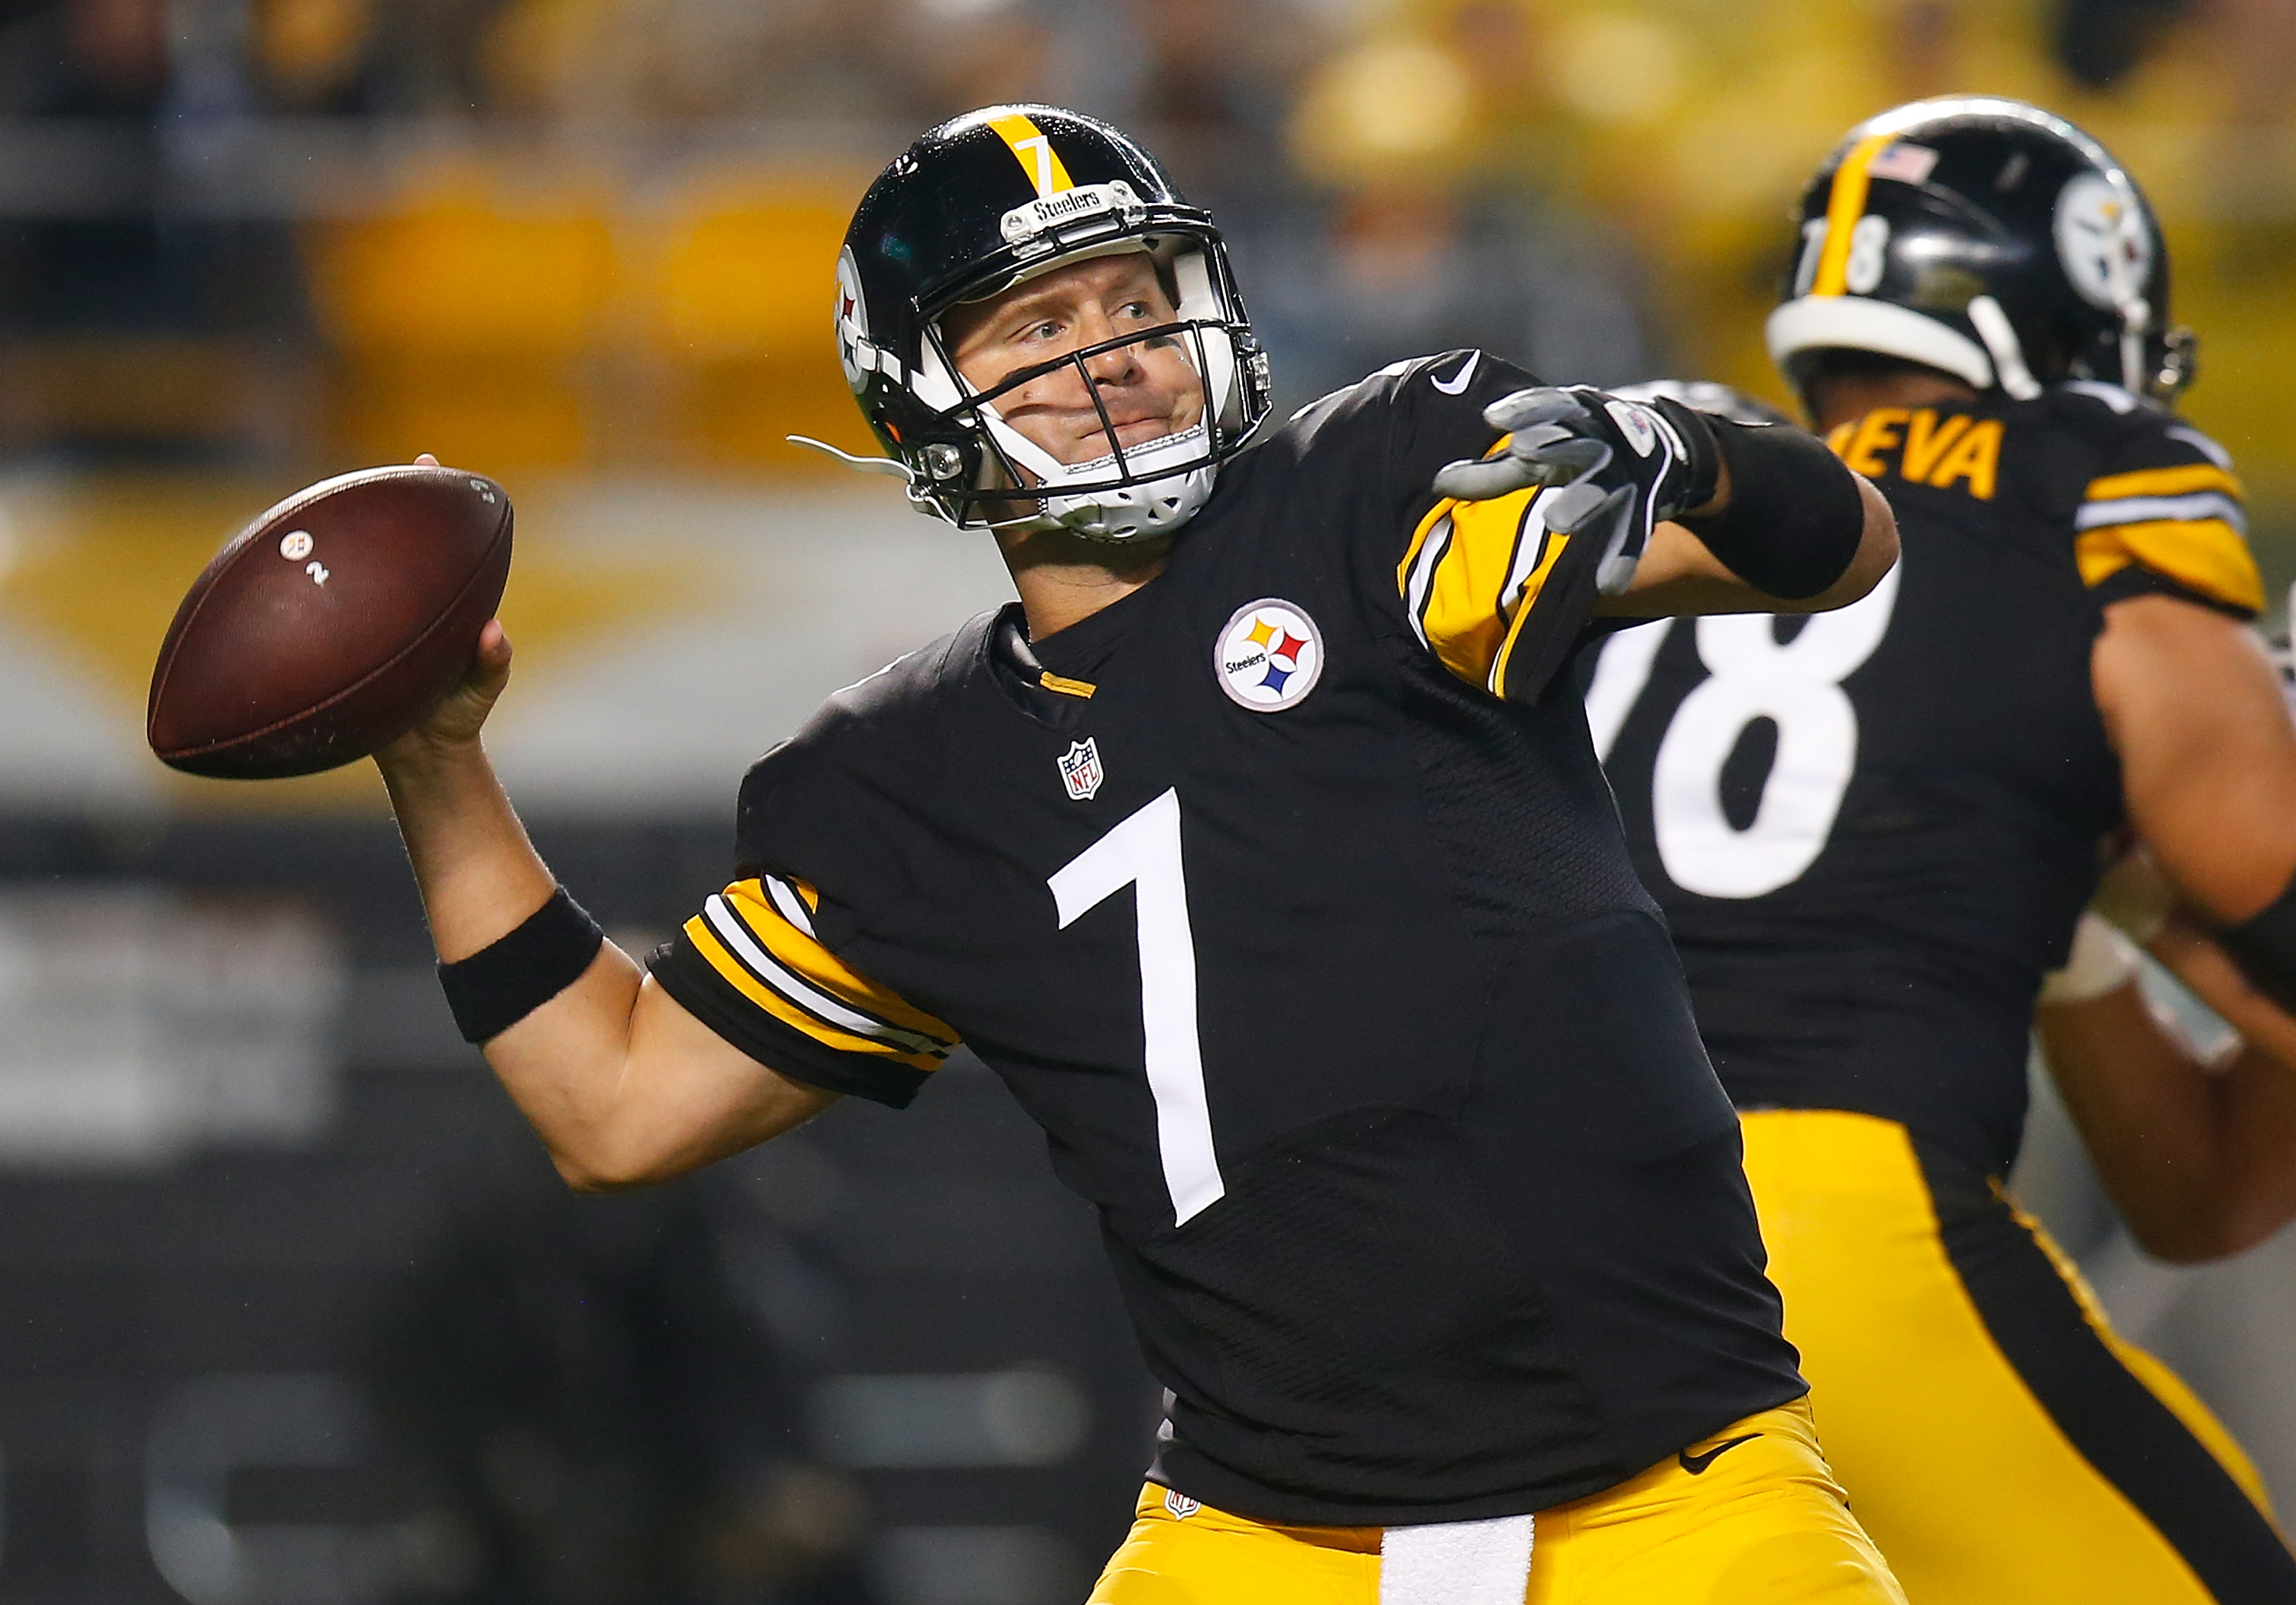 Ben Roethlisberger Has Some Advice For Colts QB Andrew Luck See